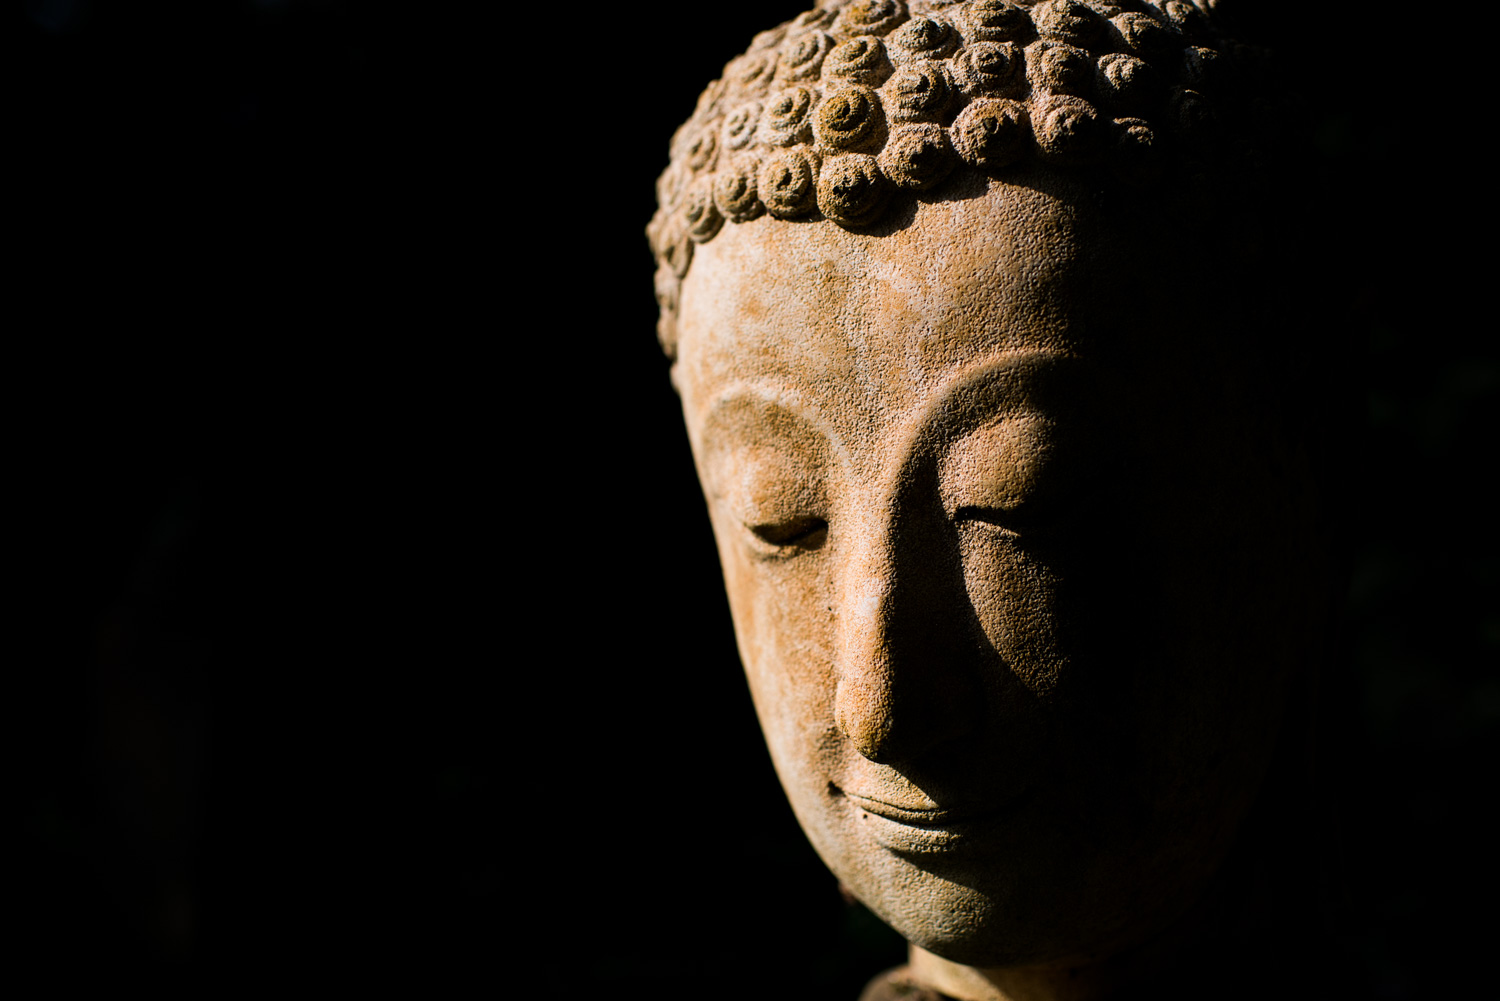 Buddha Face - dPS Writer's Favorite Lens: Why I Love My 35mm F1.4